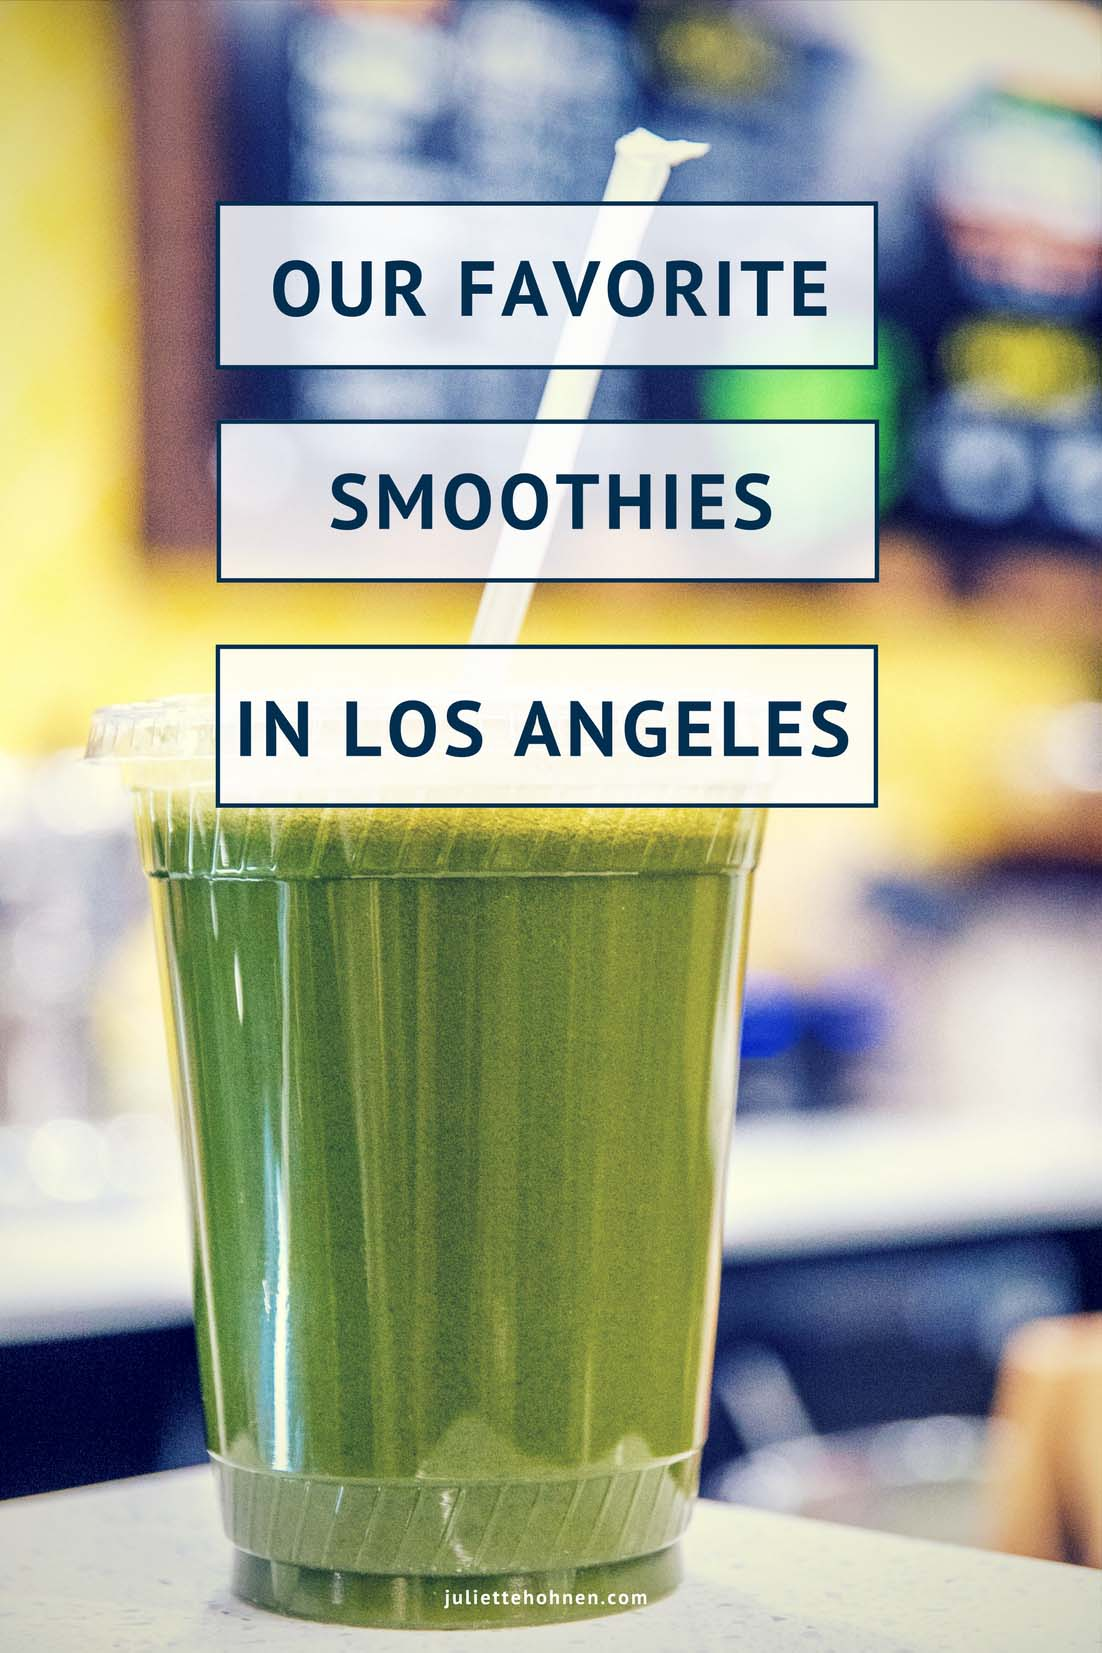 Our Favorite Smoothies in Los Angeles